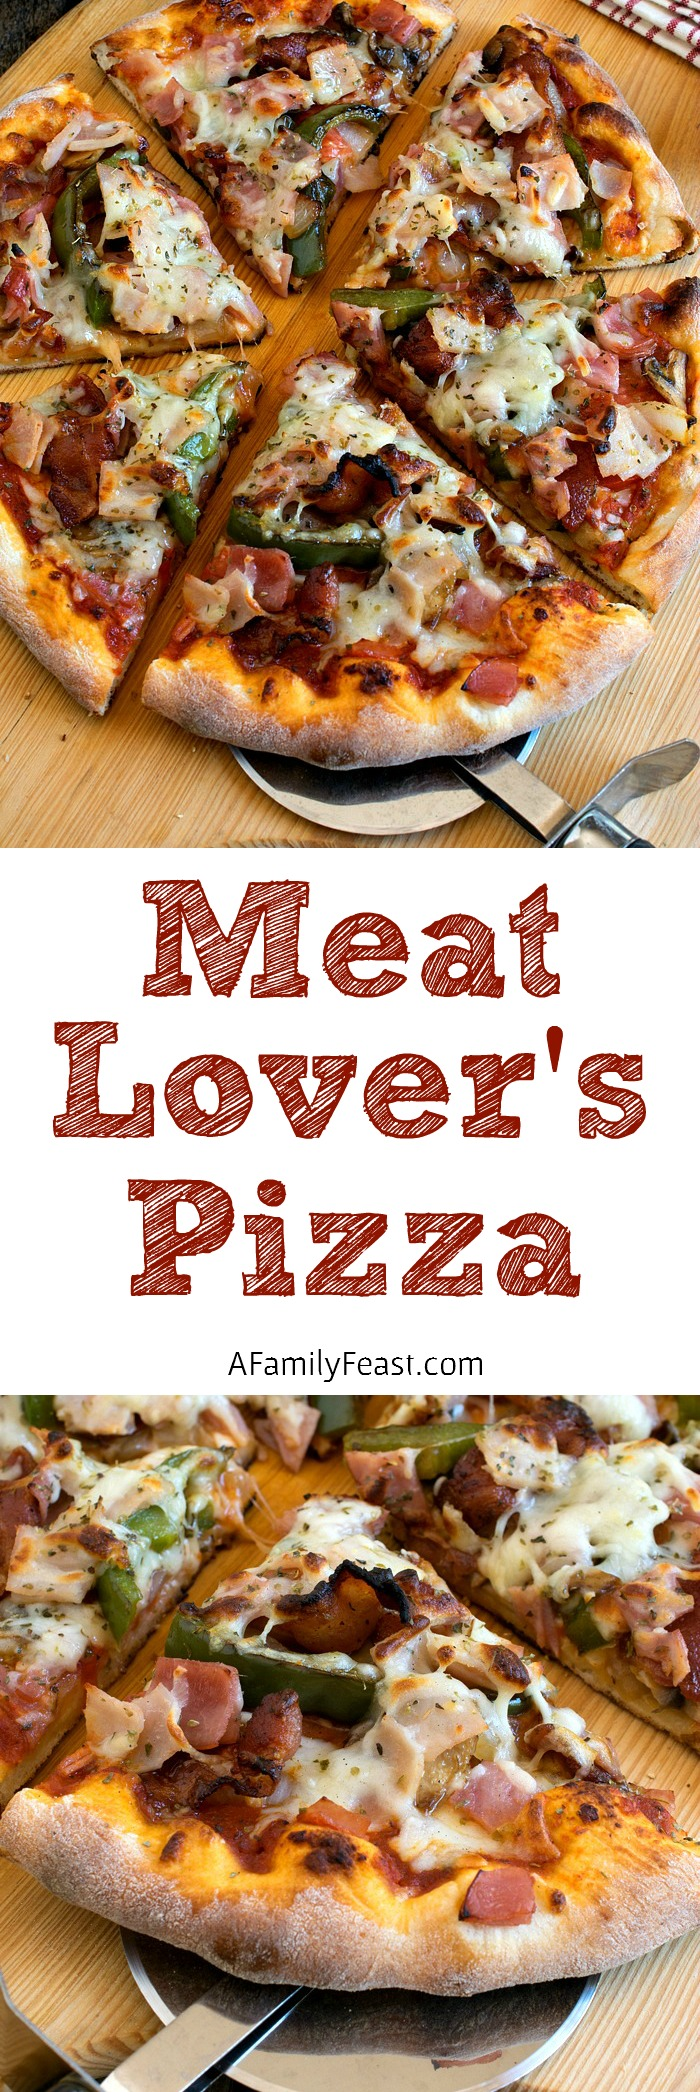 This Easy Meat Lover's Pizza is proof positive that you can still enjoy a delicious pizza night at home even if you're making an effort to eat a cleaner diet.